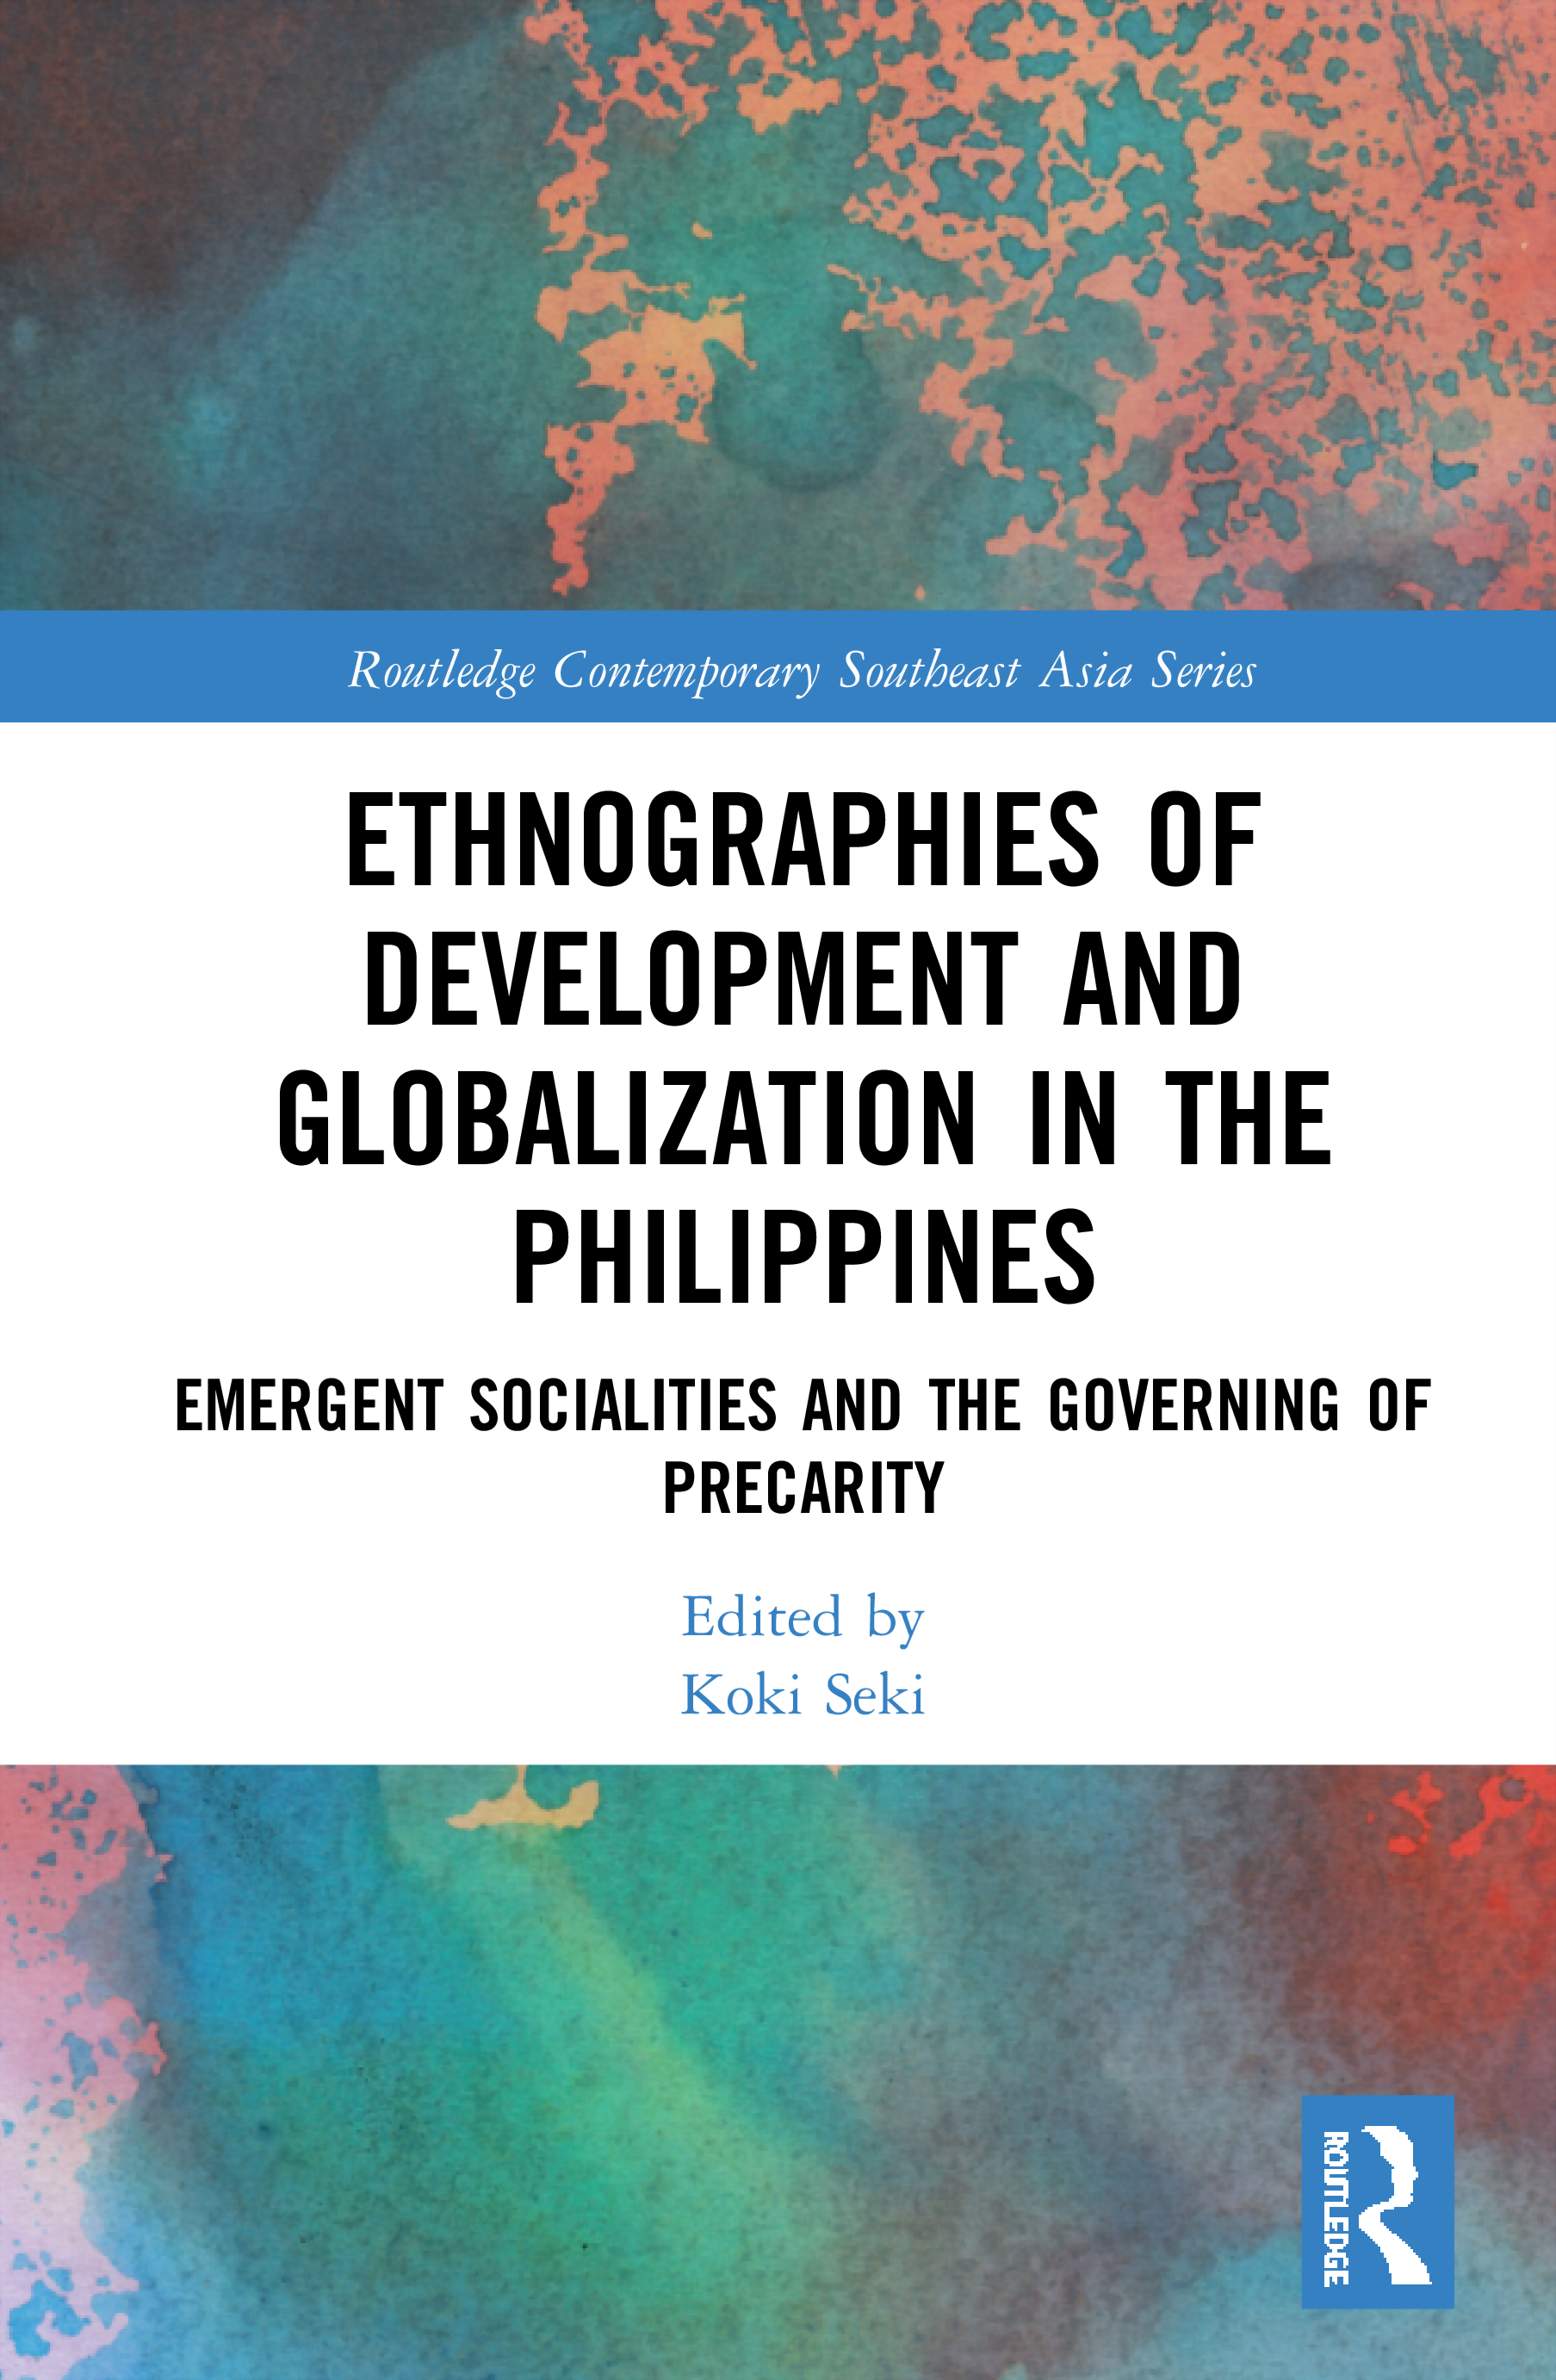 Ethnographies of Development and Globalization in the Philippines: Emergent Socialities and the Governing of Precarity book cover